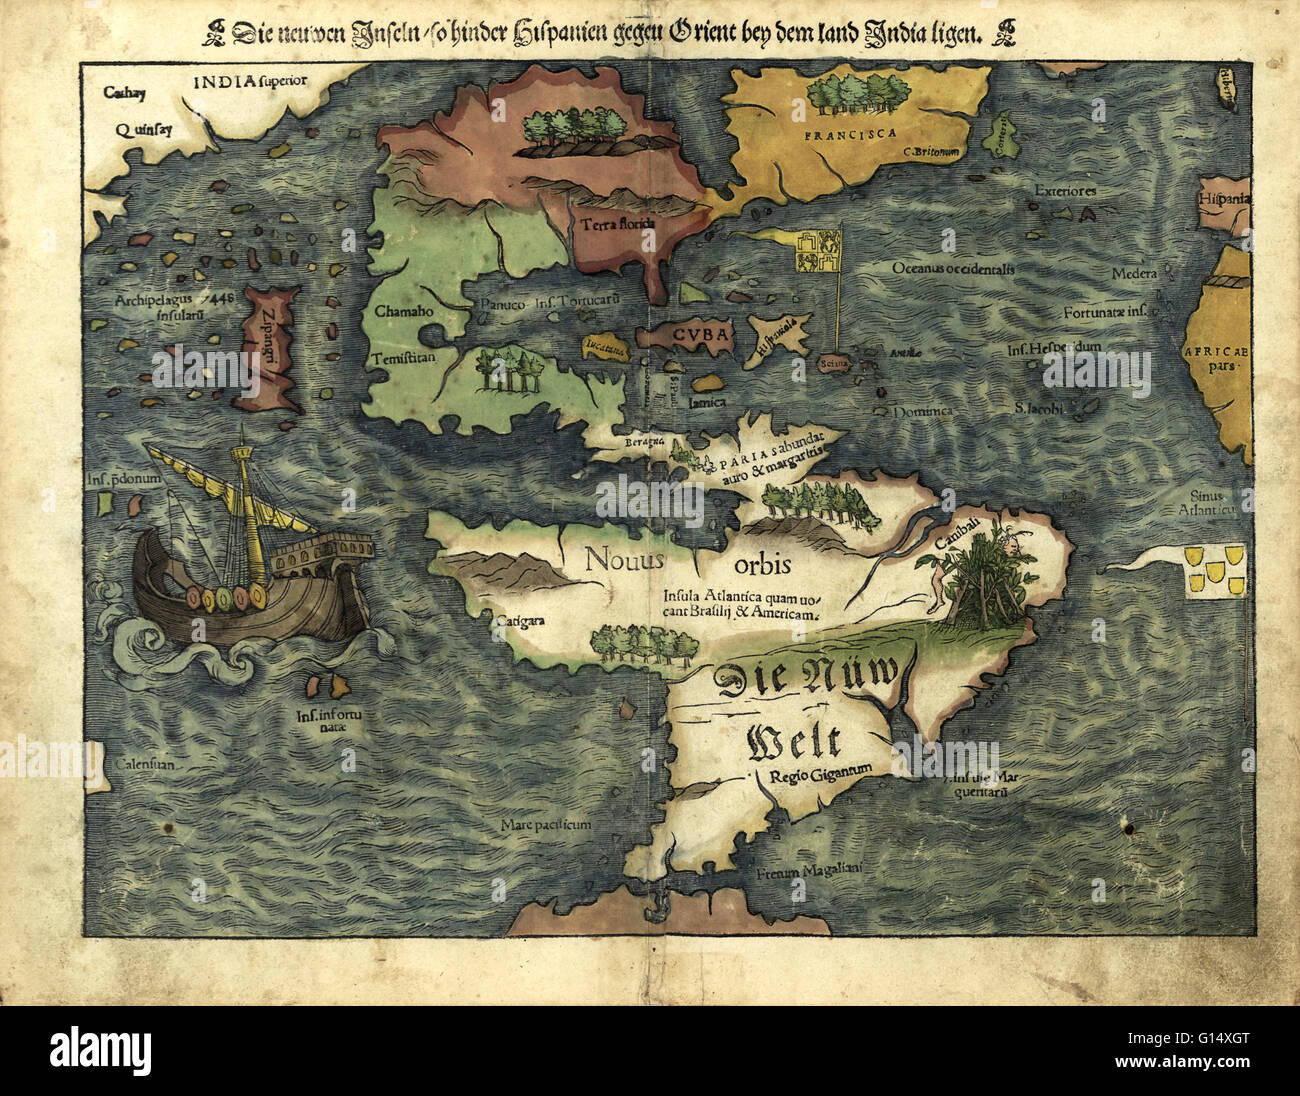 16th century map of the Americas. Published in 1550, this German map shows a rudimentary geography of the newly - Stock Image